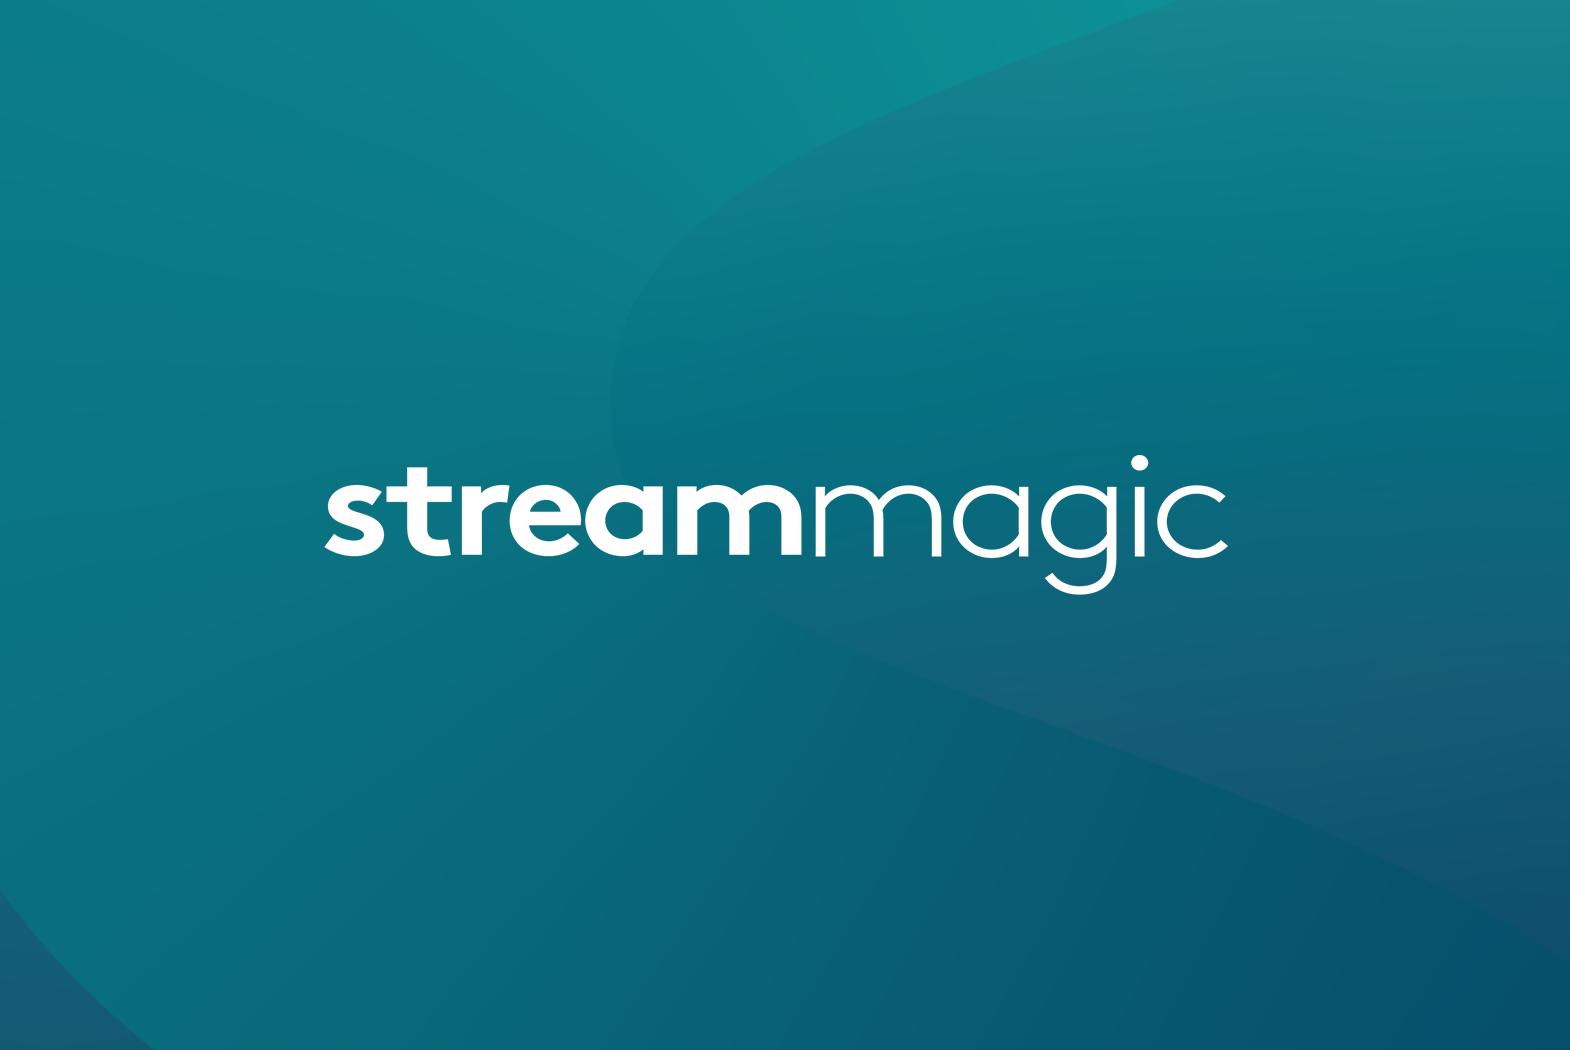 streammagic